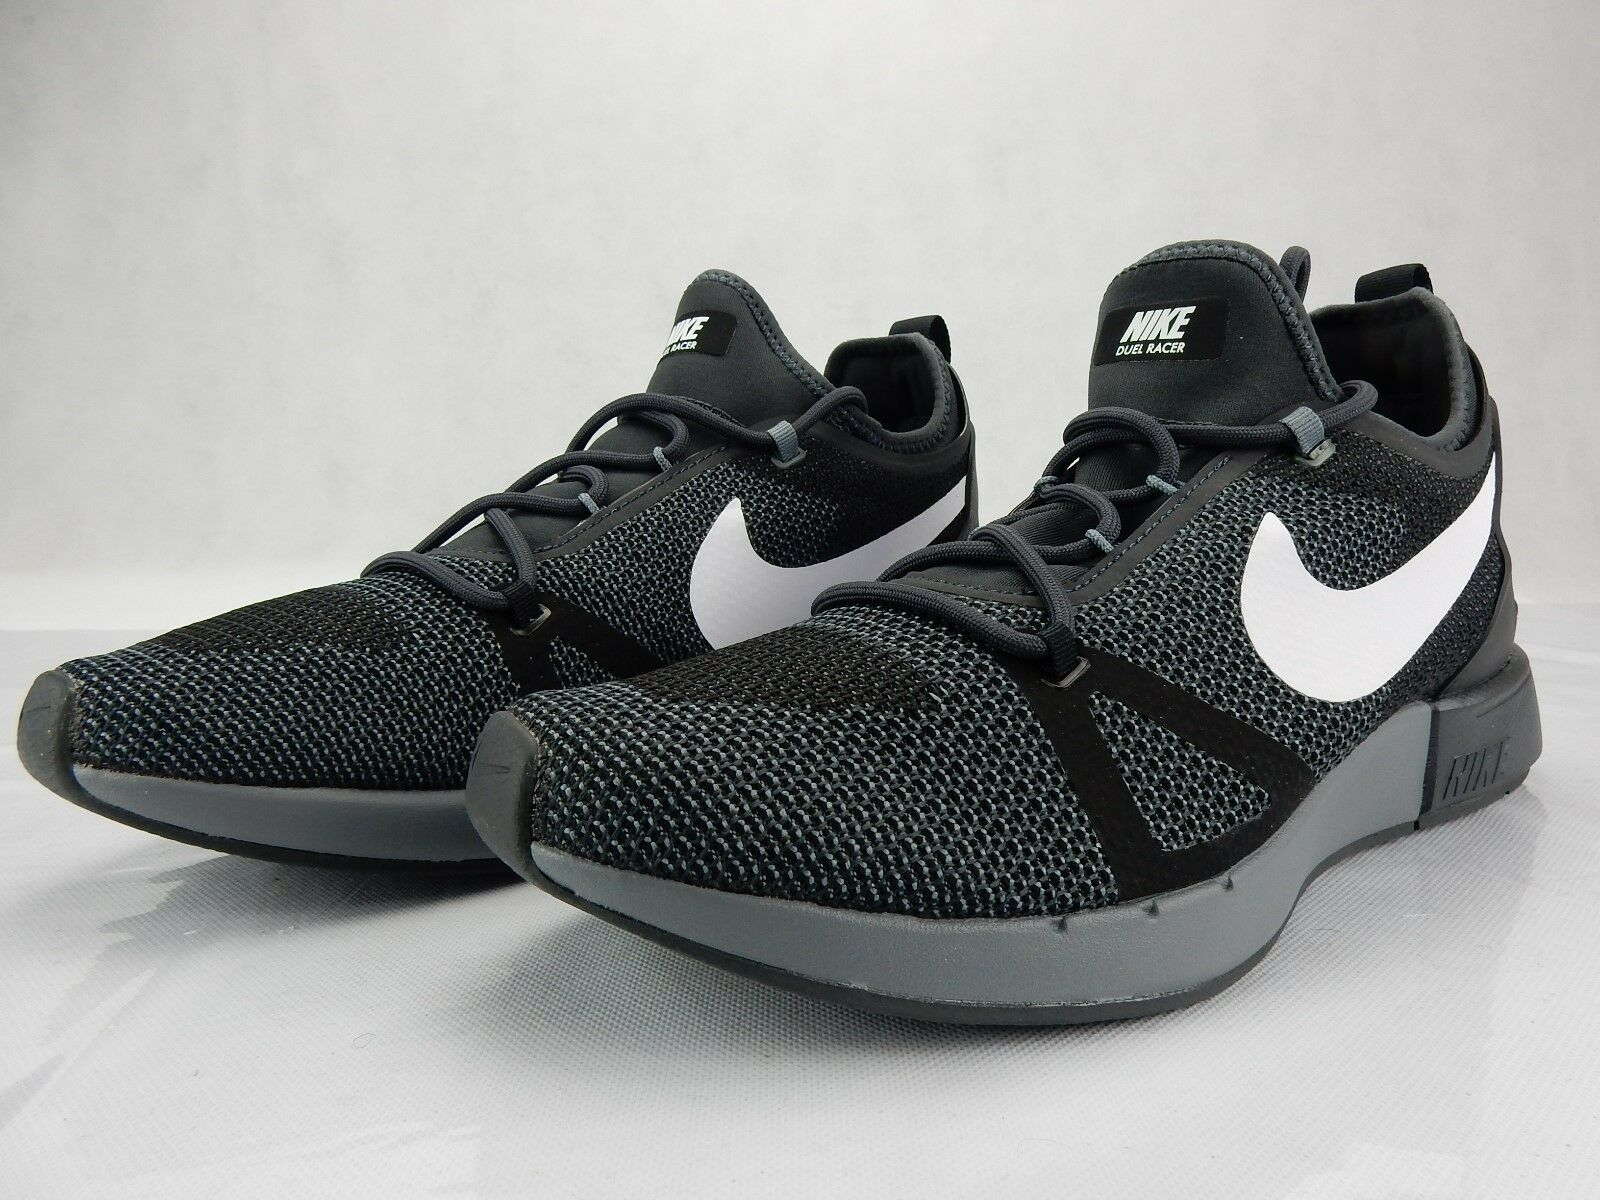 Nike Duel Racer Black White Anthracite Shoes s 918228 007 Size 11 Mens Sneakers